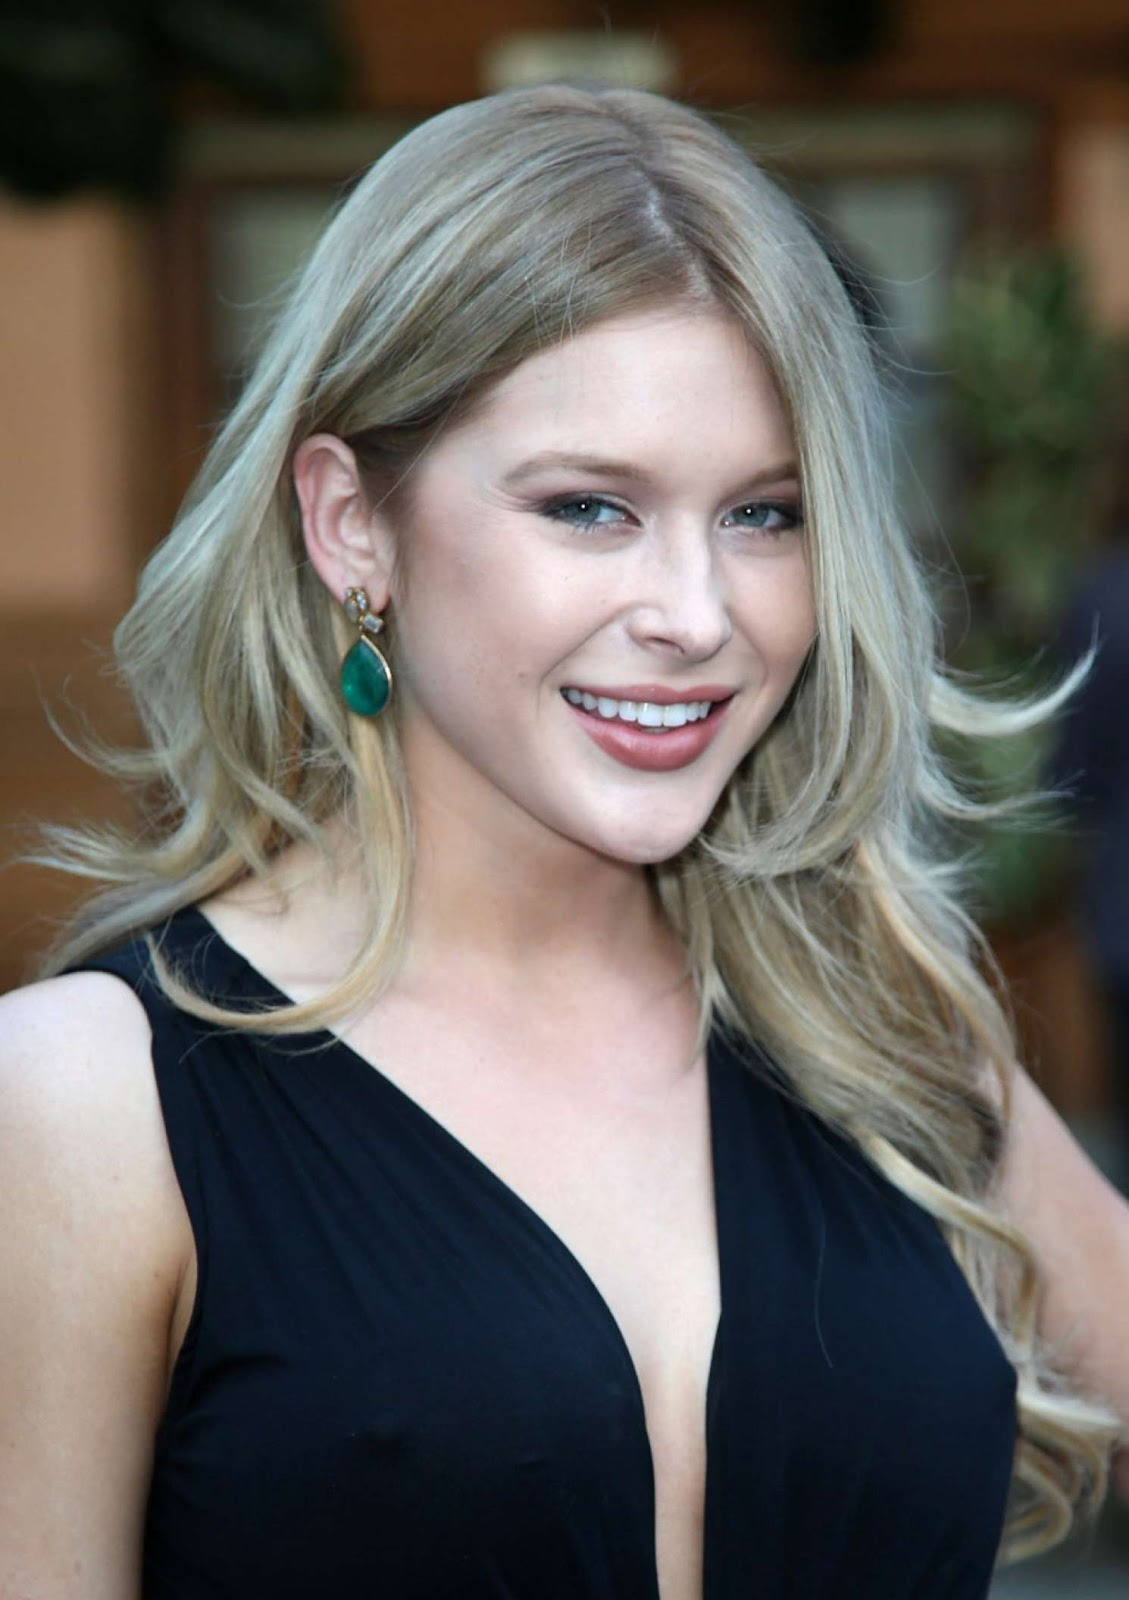 'The Midnight Game' actress Renee Olstead Full HD Photos & Wallpapers